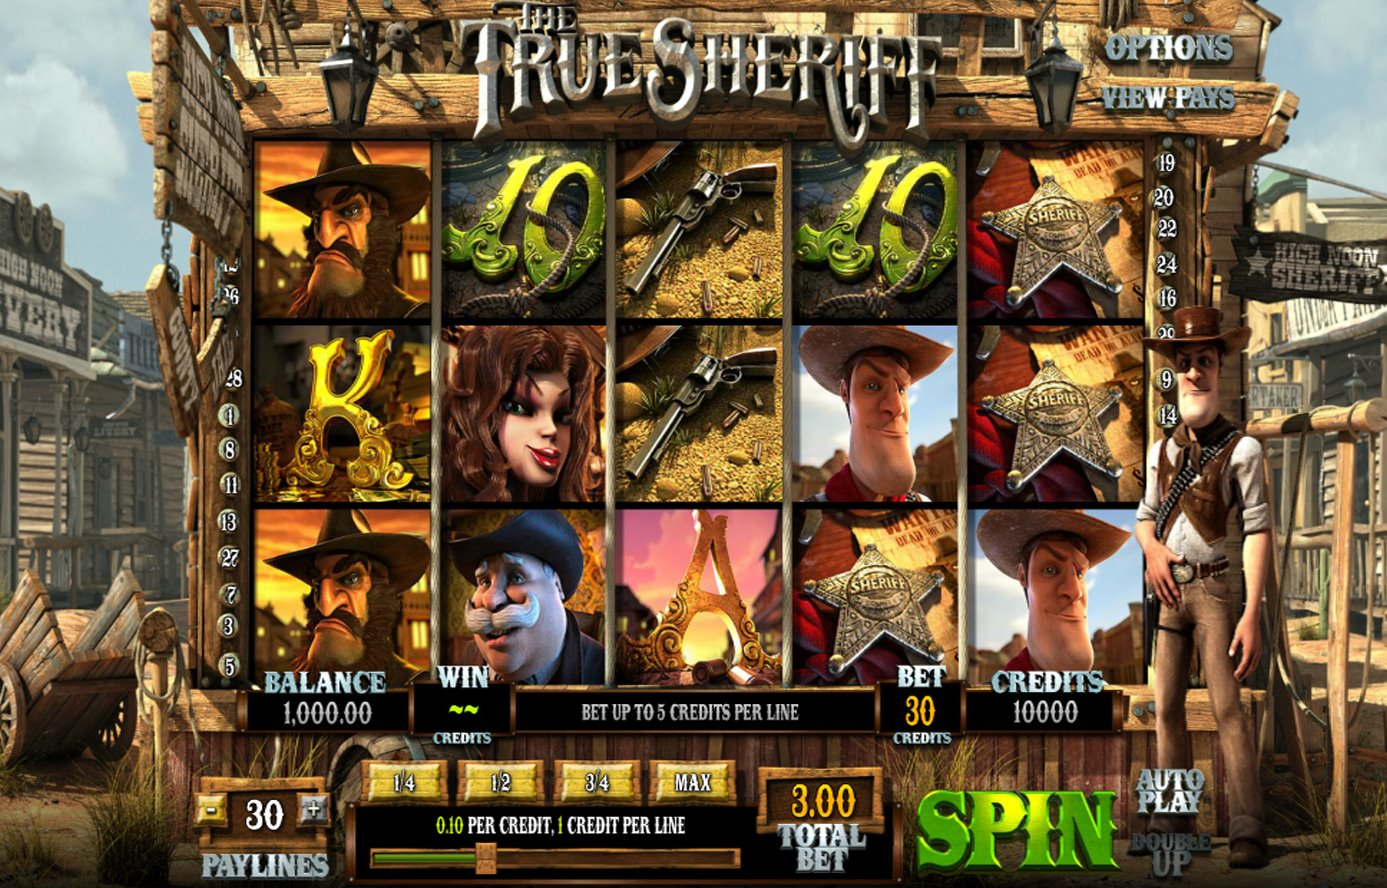 True Sheriff Slots - Play the True Sheriff Slot Online